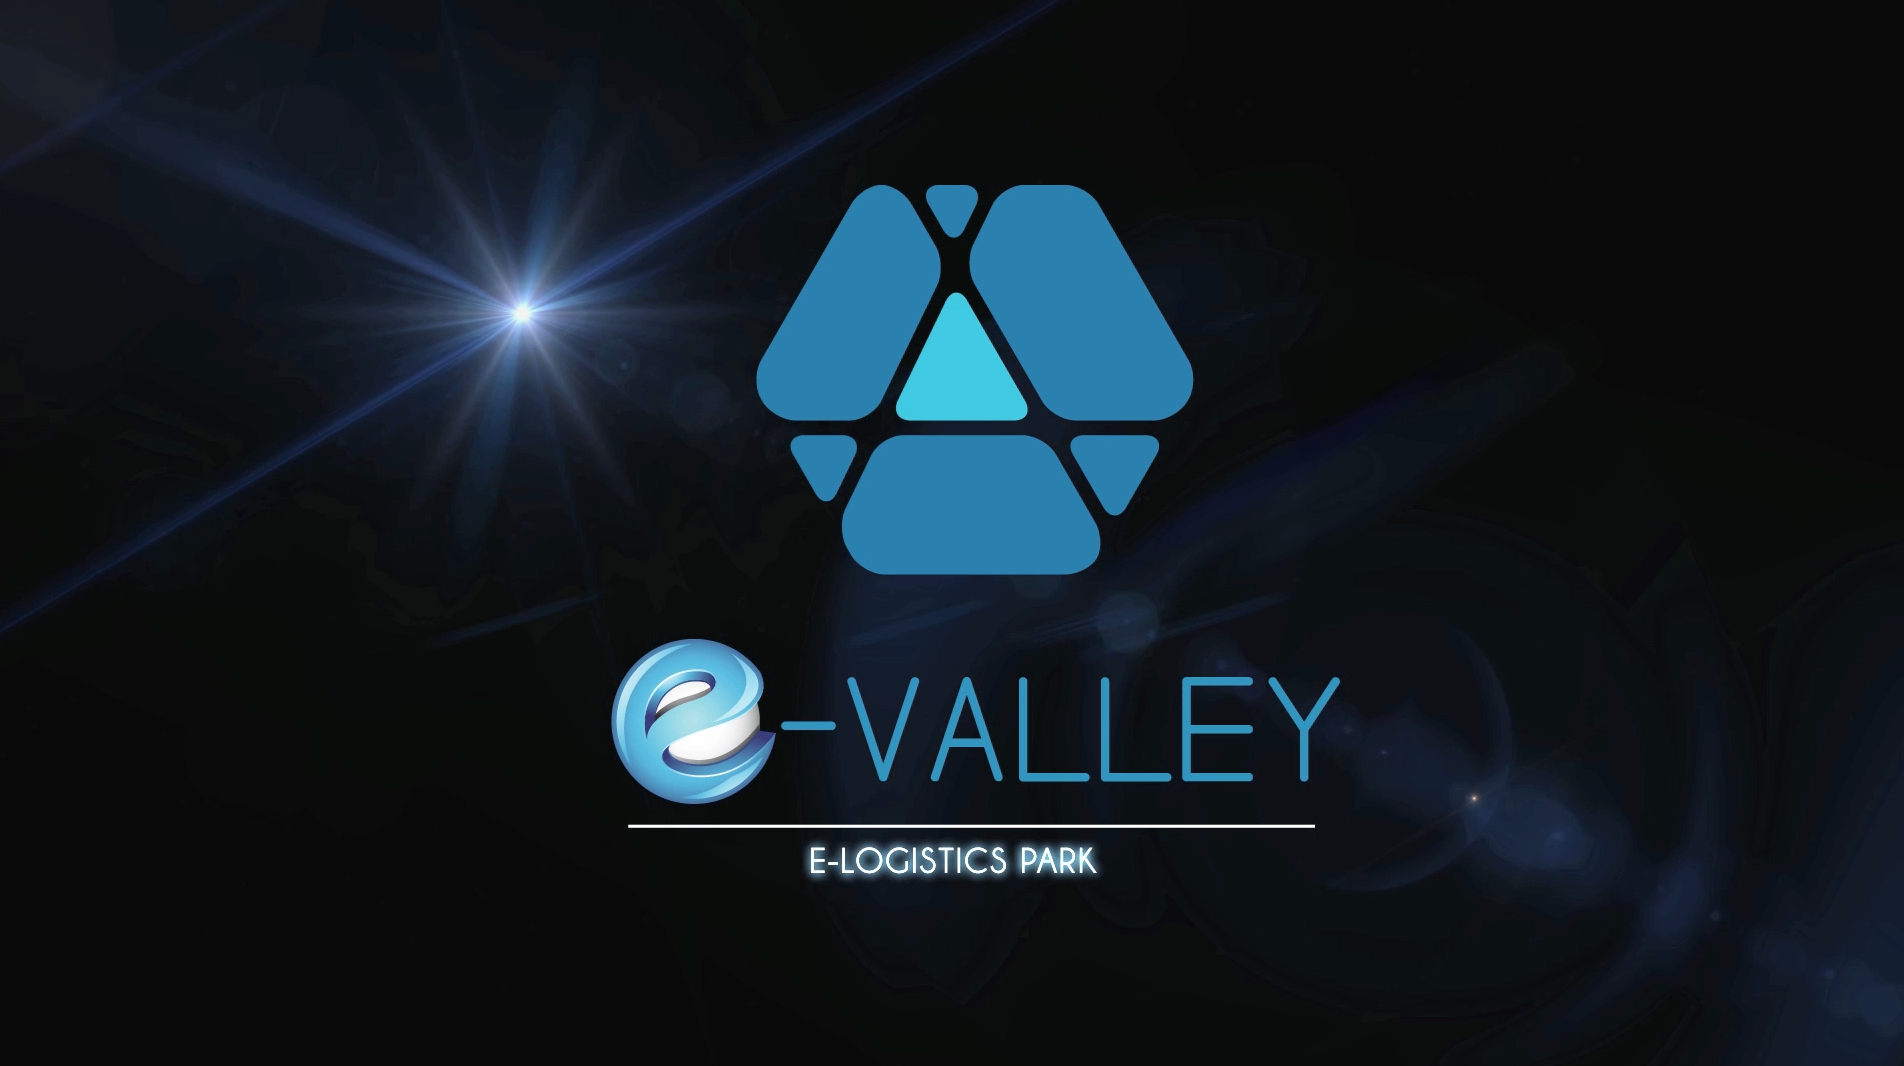 logo e-valley